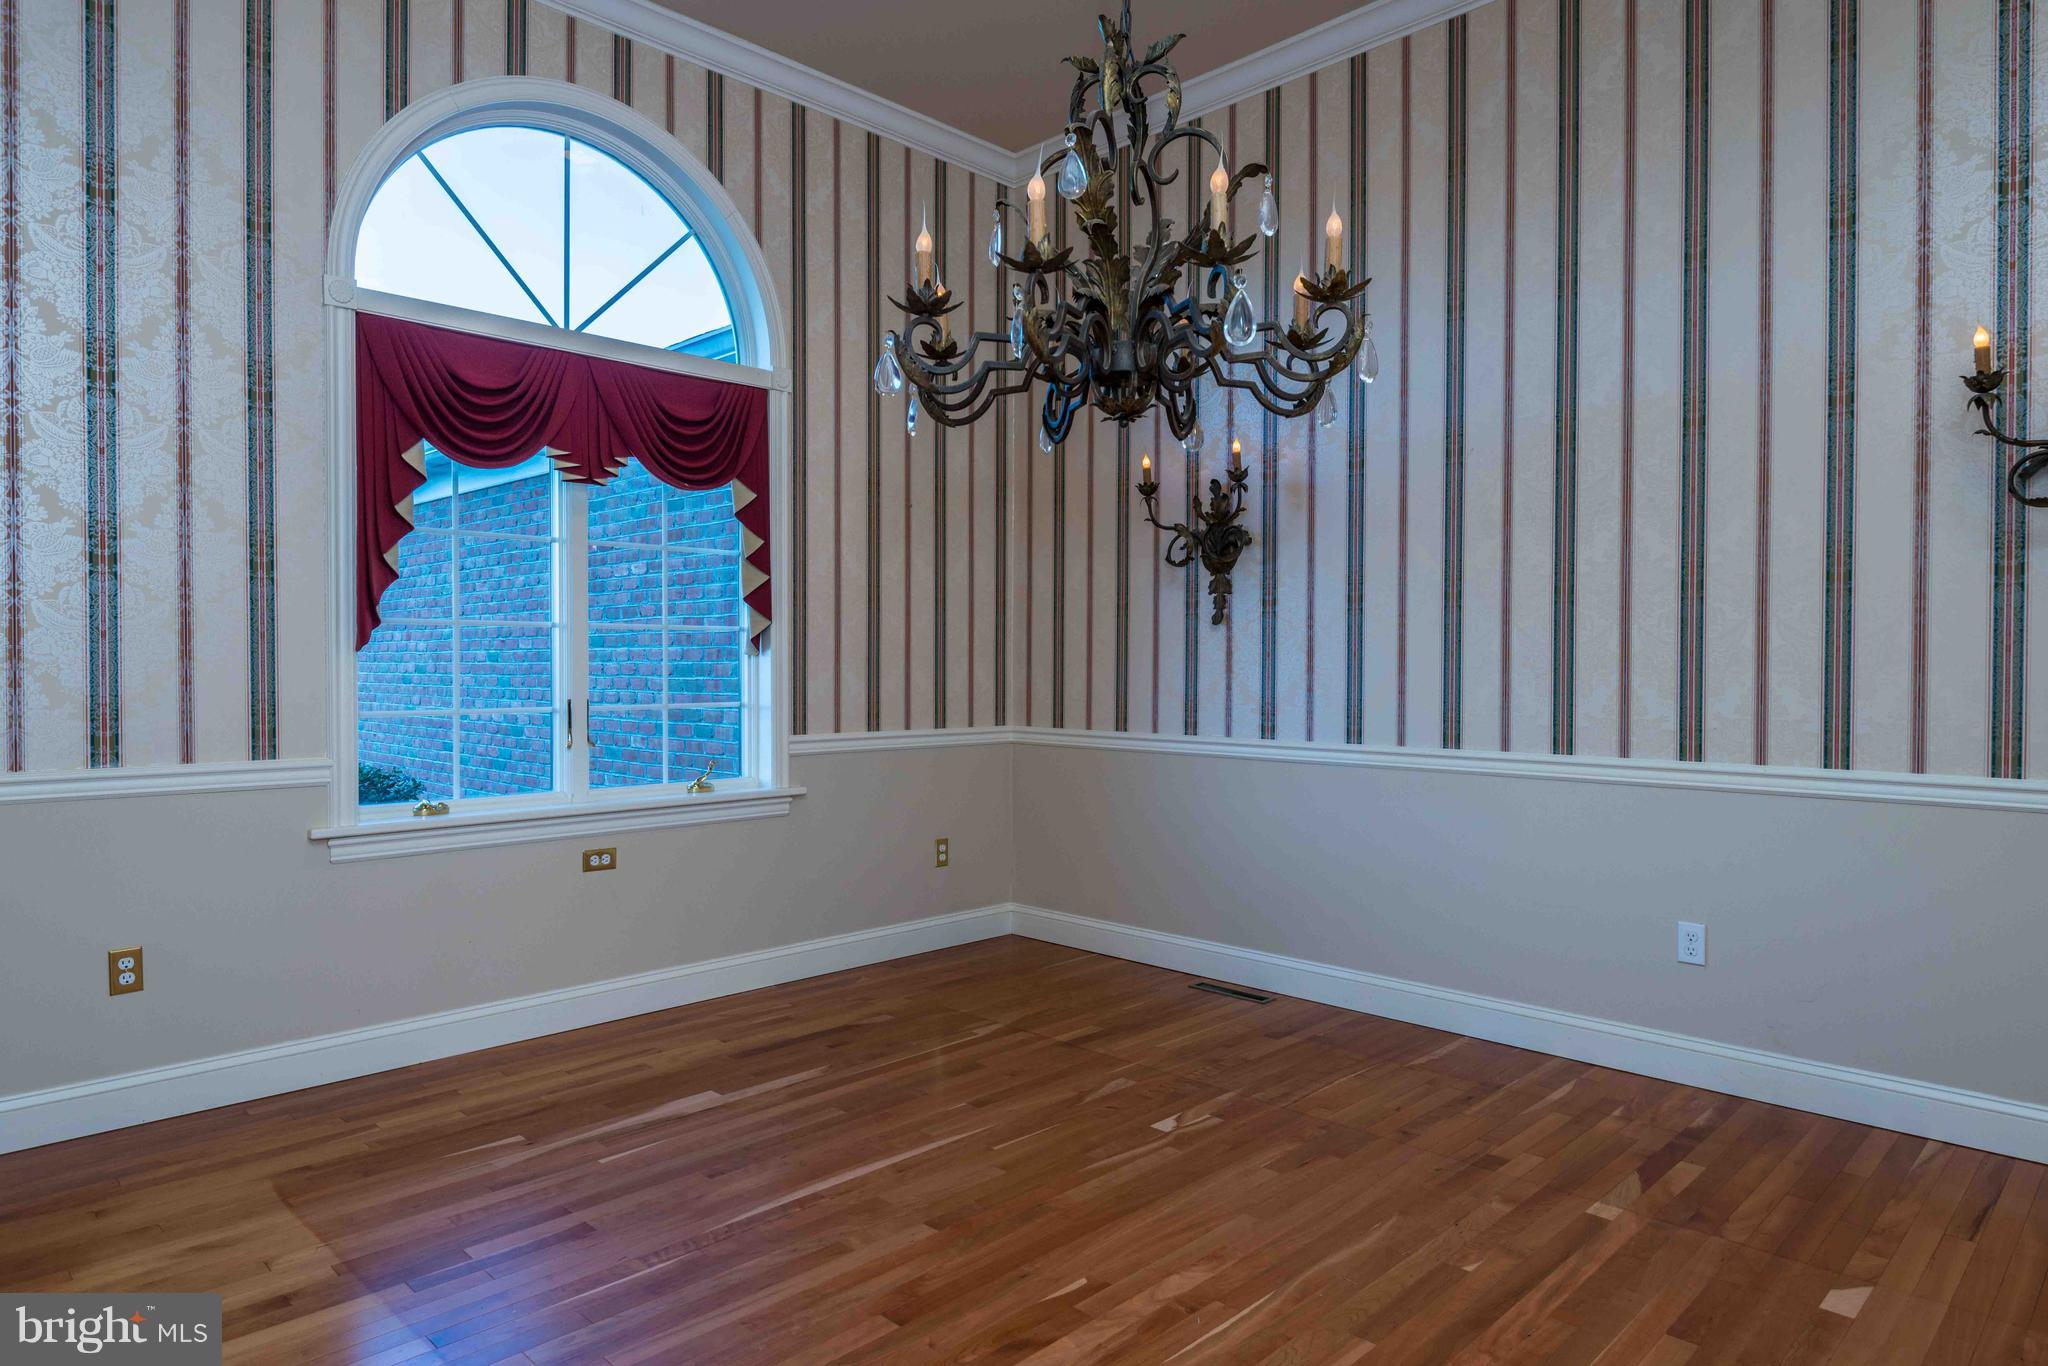 Residential for sale in READING, Pennsylvania, 1005954243 on